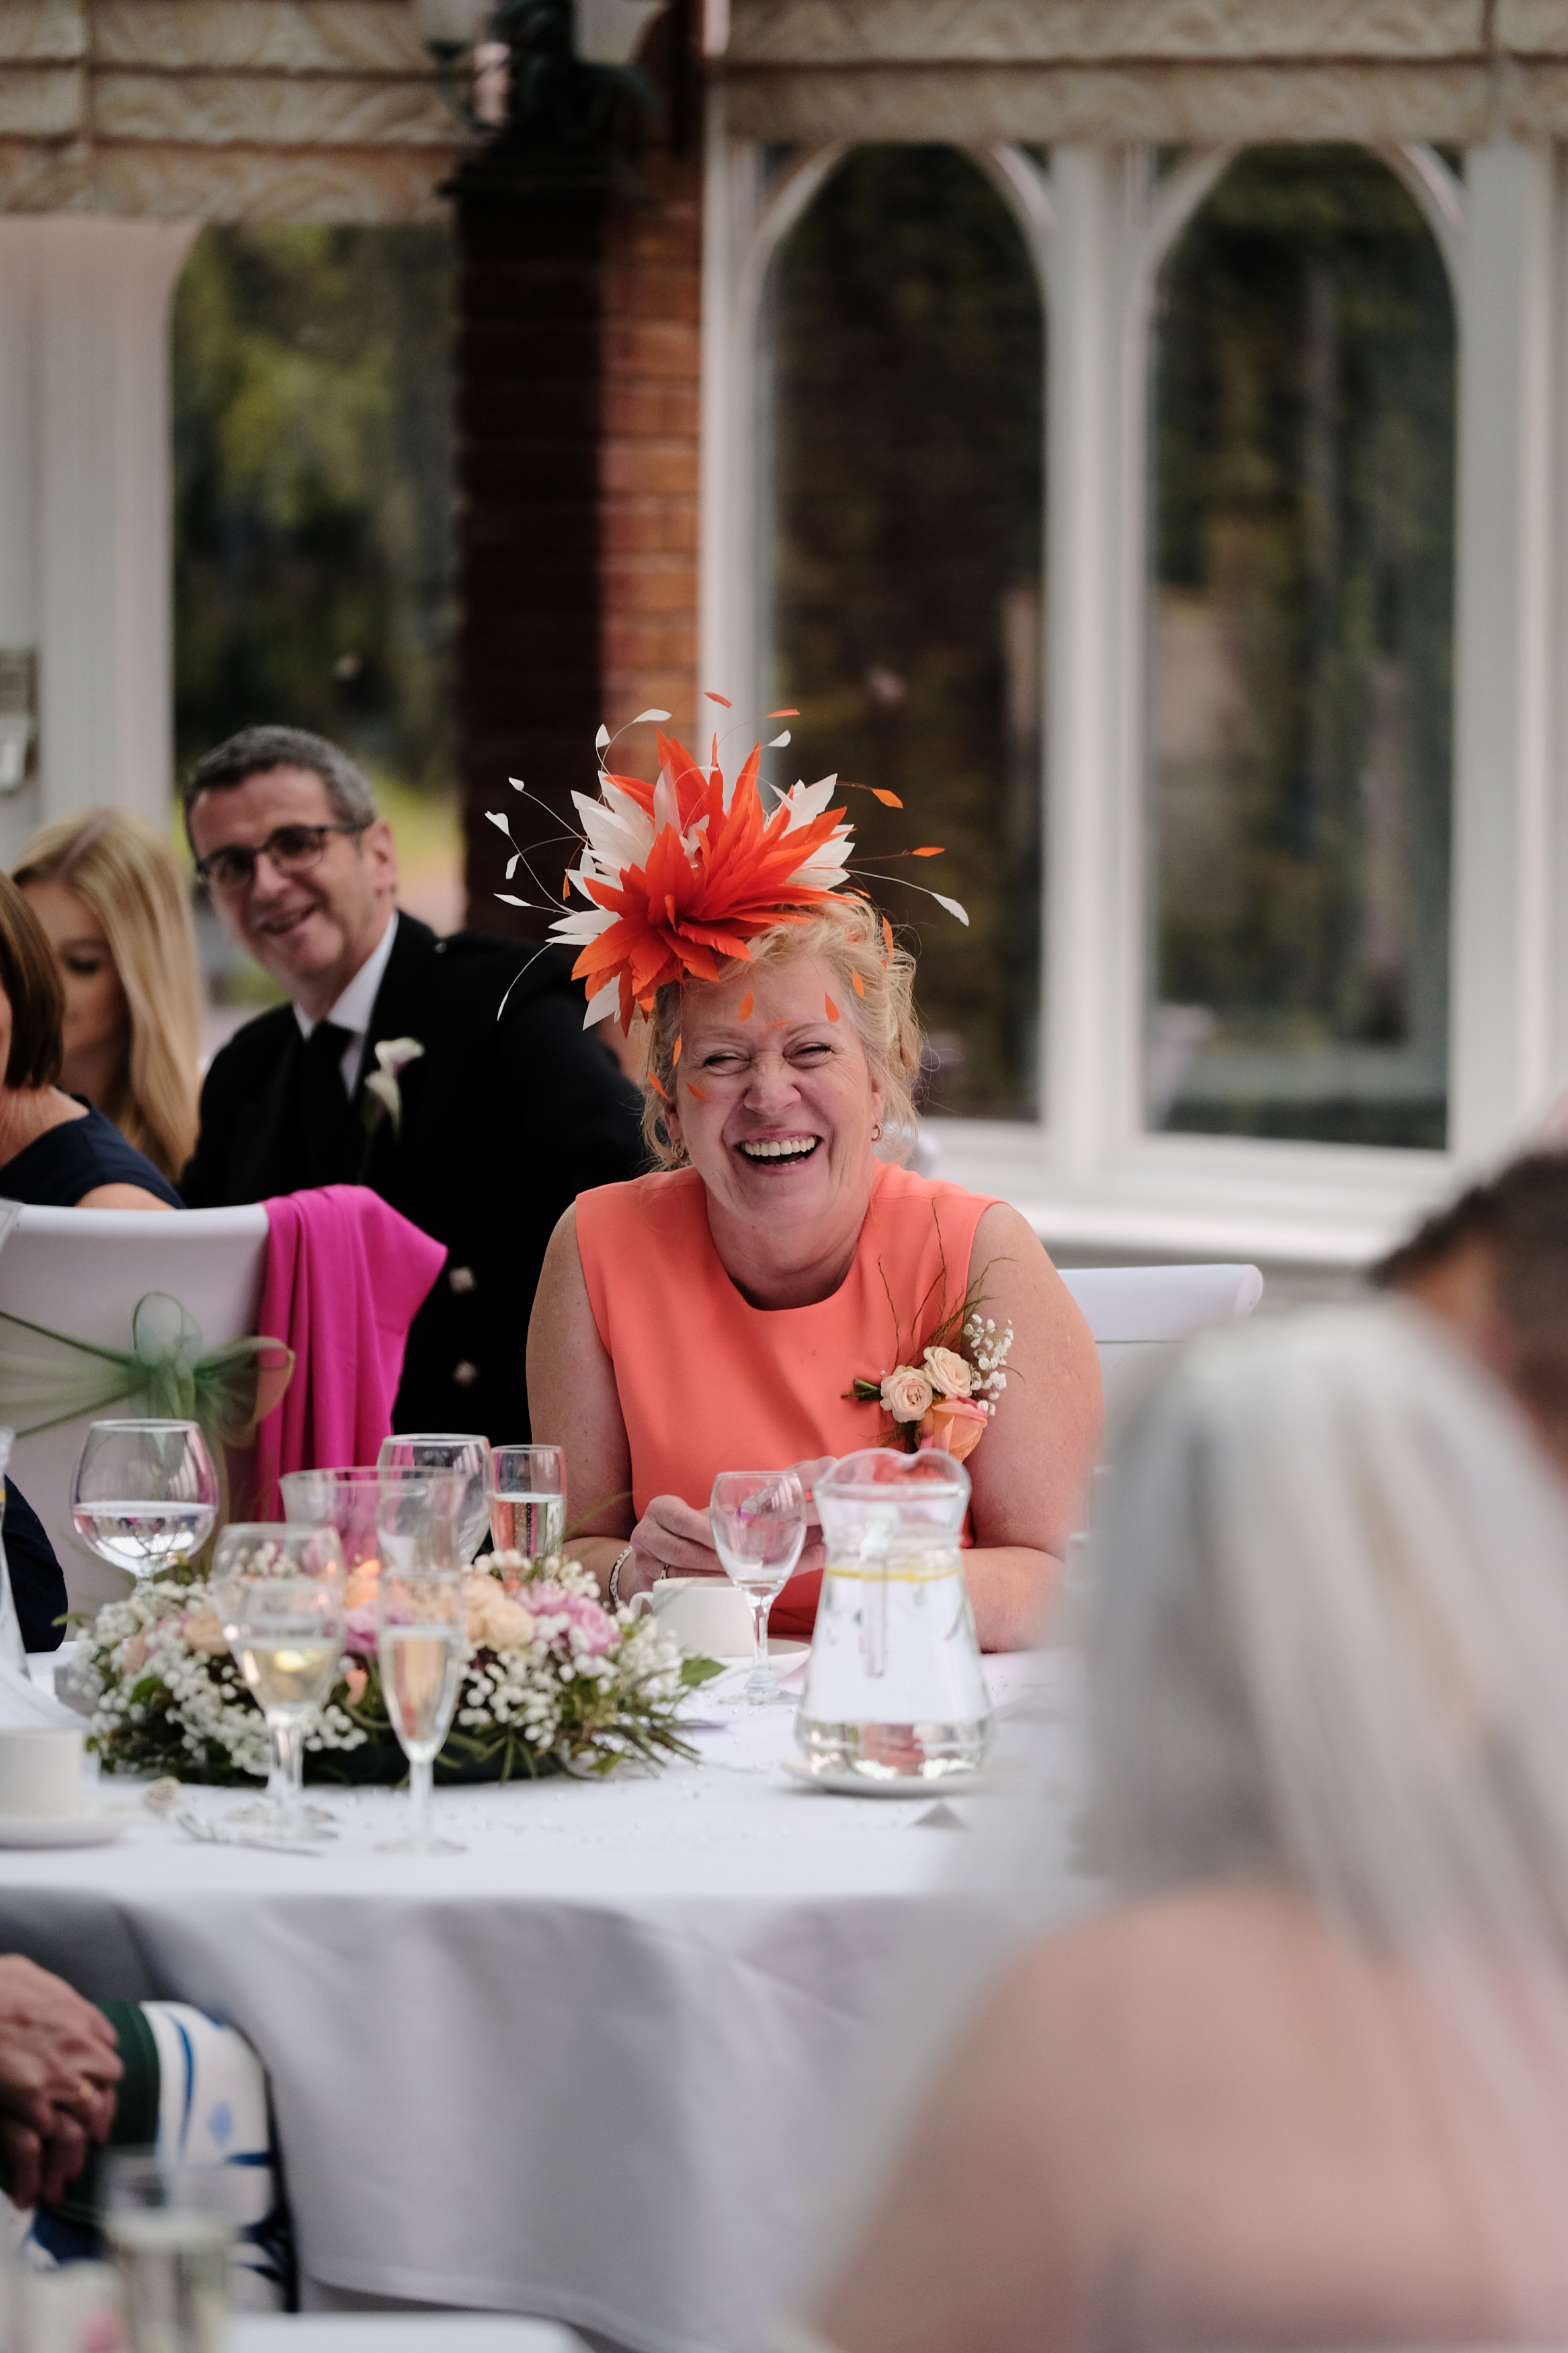 Warwickshire Wedding Photographer Ardencote Manor House 29 - mother of the groom candid portrait laughing.jpg